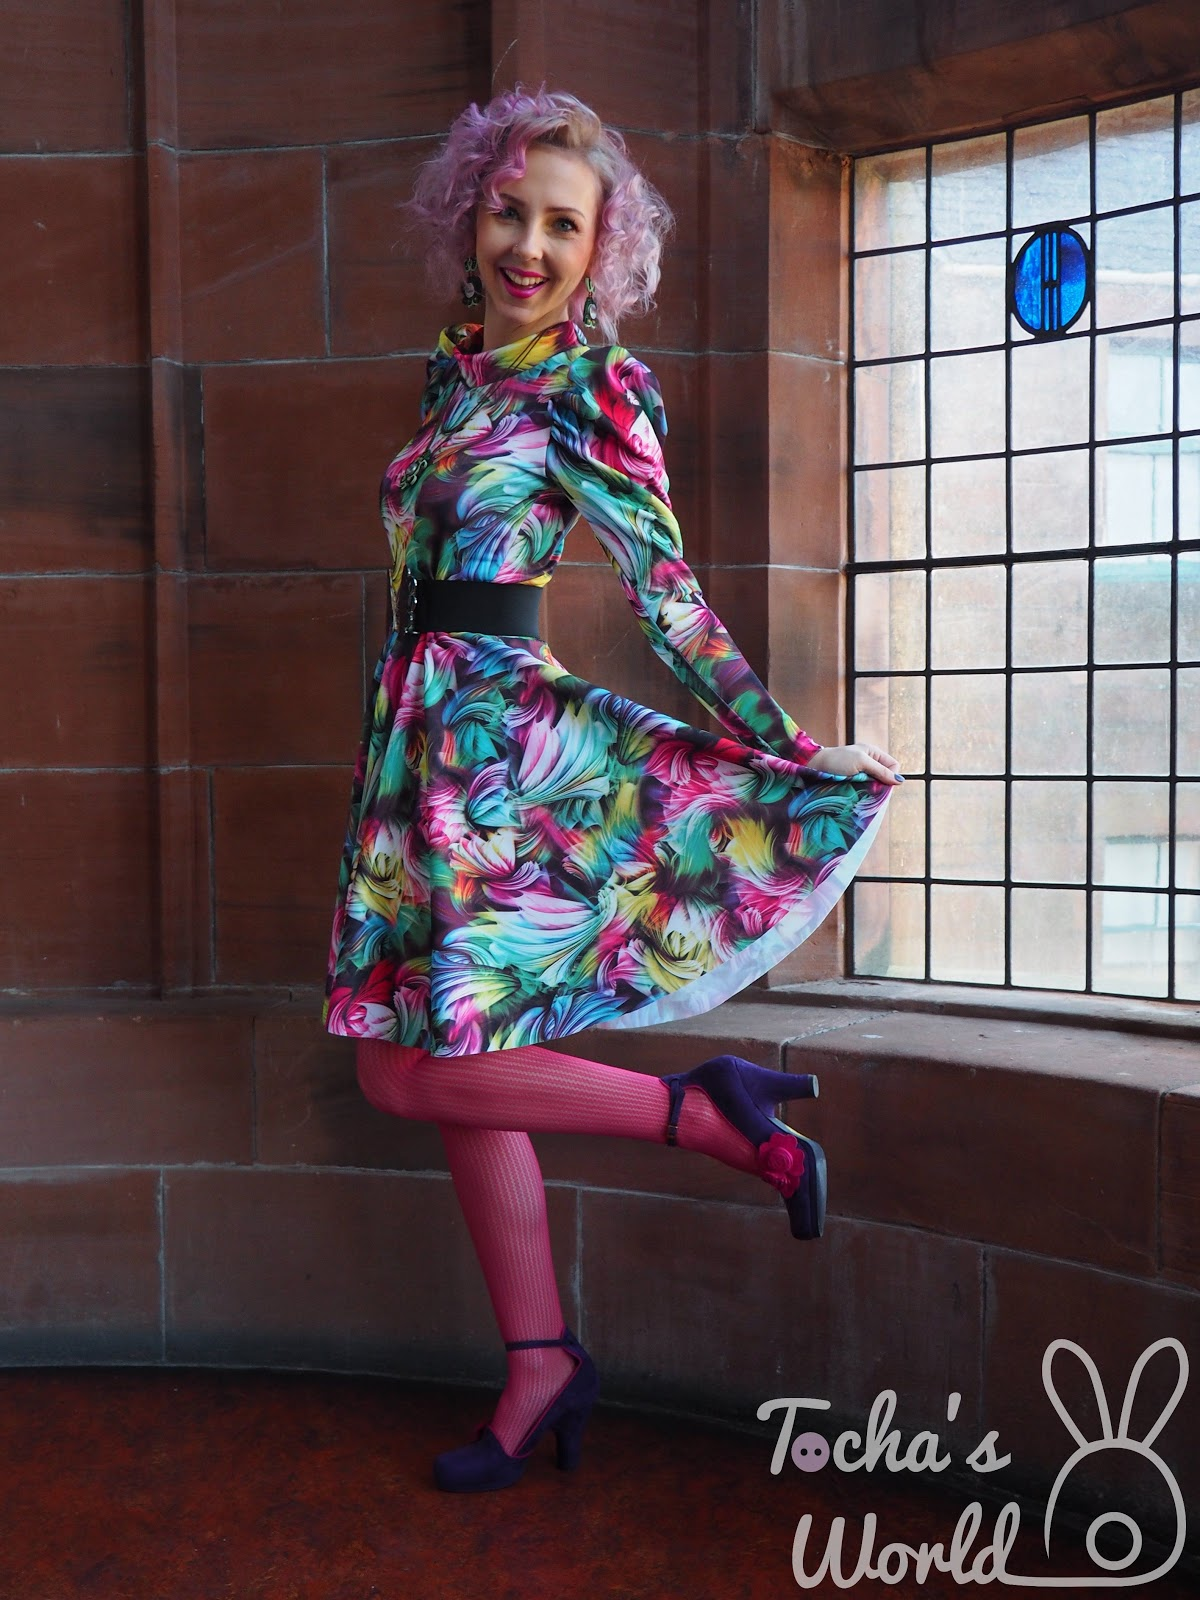 Abakhan, Charles Rennie Mackintosh, circle, digital, dress, earrings, ethical fashion, leg-O-mutton, Lush, pendant, print, Ruby Shoo, Scotland Street School Museum, scuba, sleeve, soutache, vegan, Victorian, Tocha's World